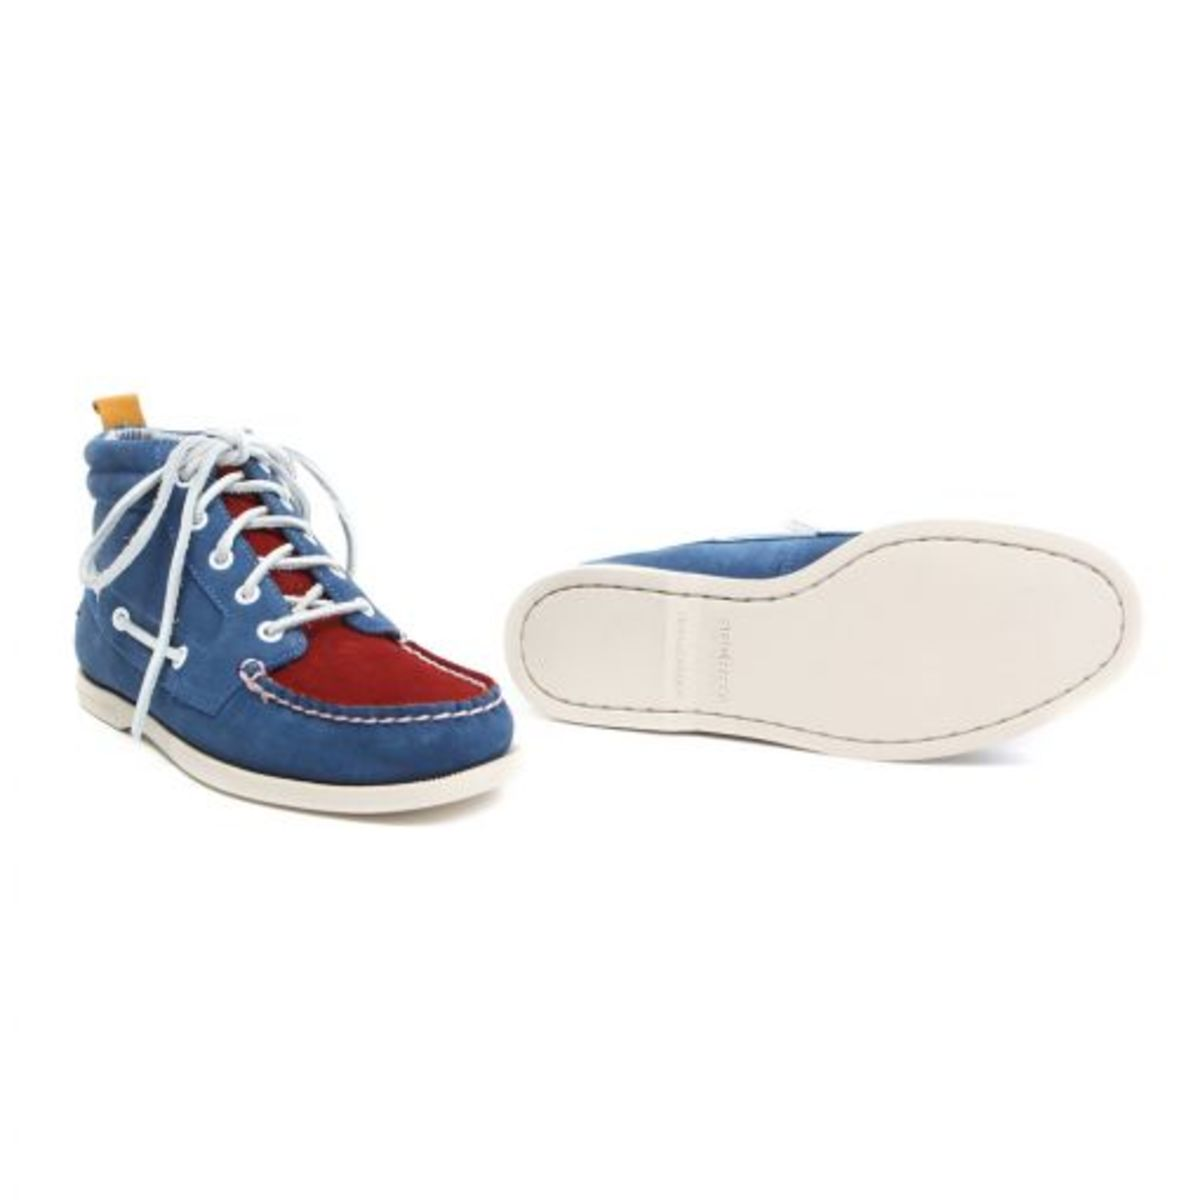 band_of_outsider_sperry_topsider_15